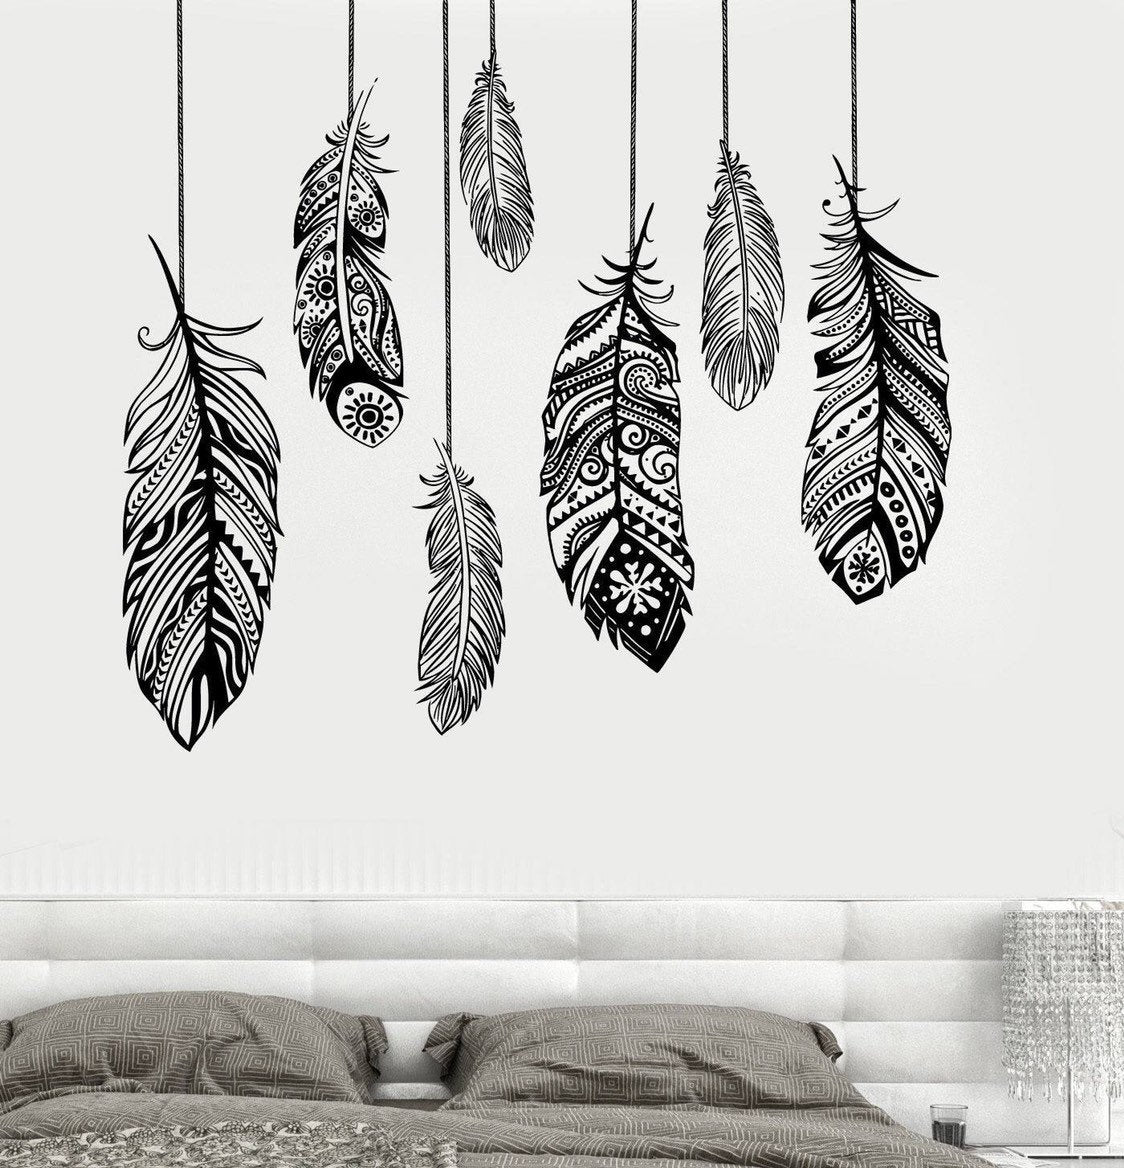 Boho patterned feathers abstract wall decal  vinyl wall sticker mural decor art